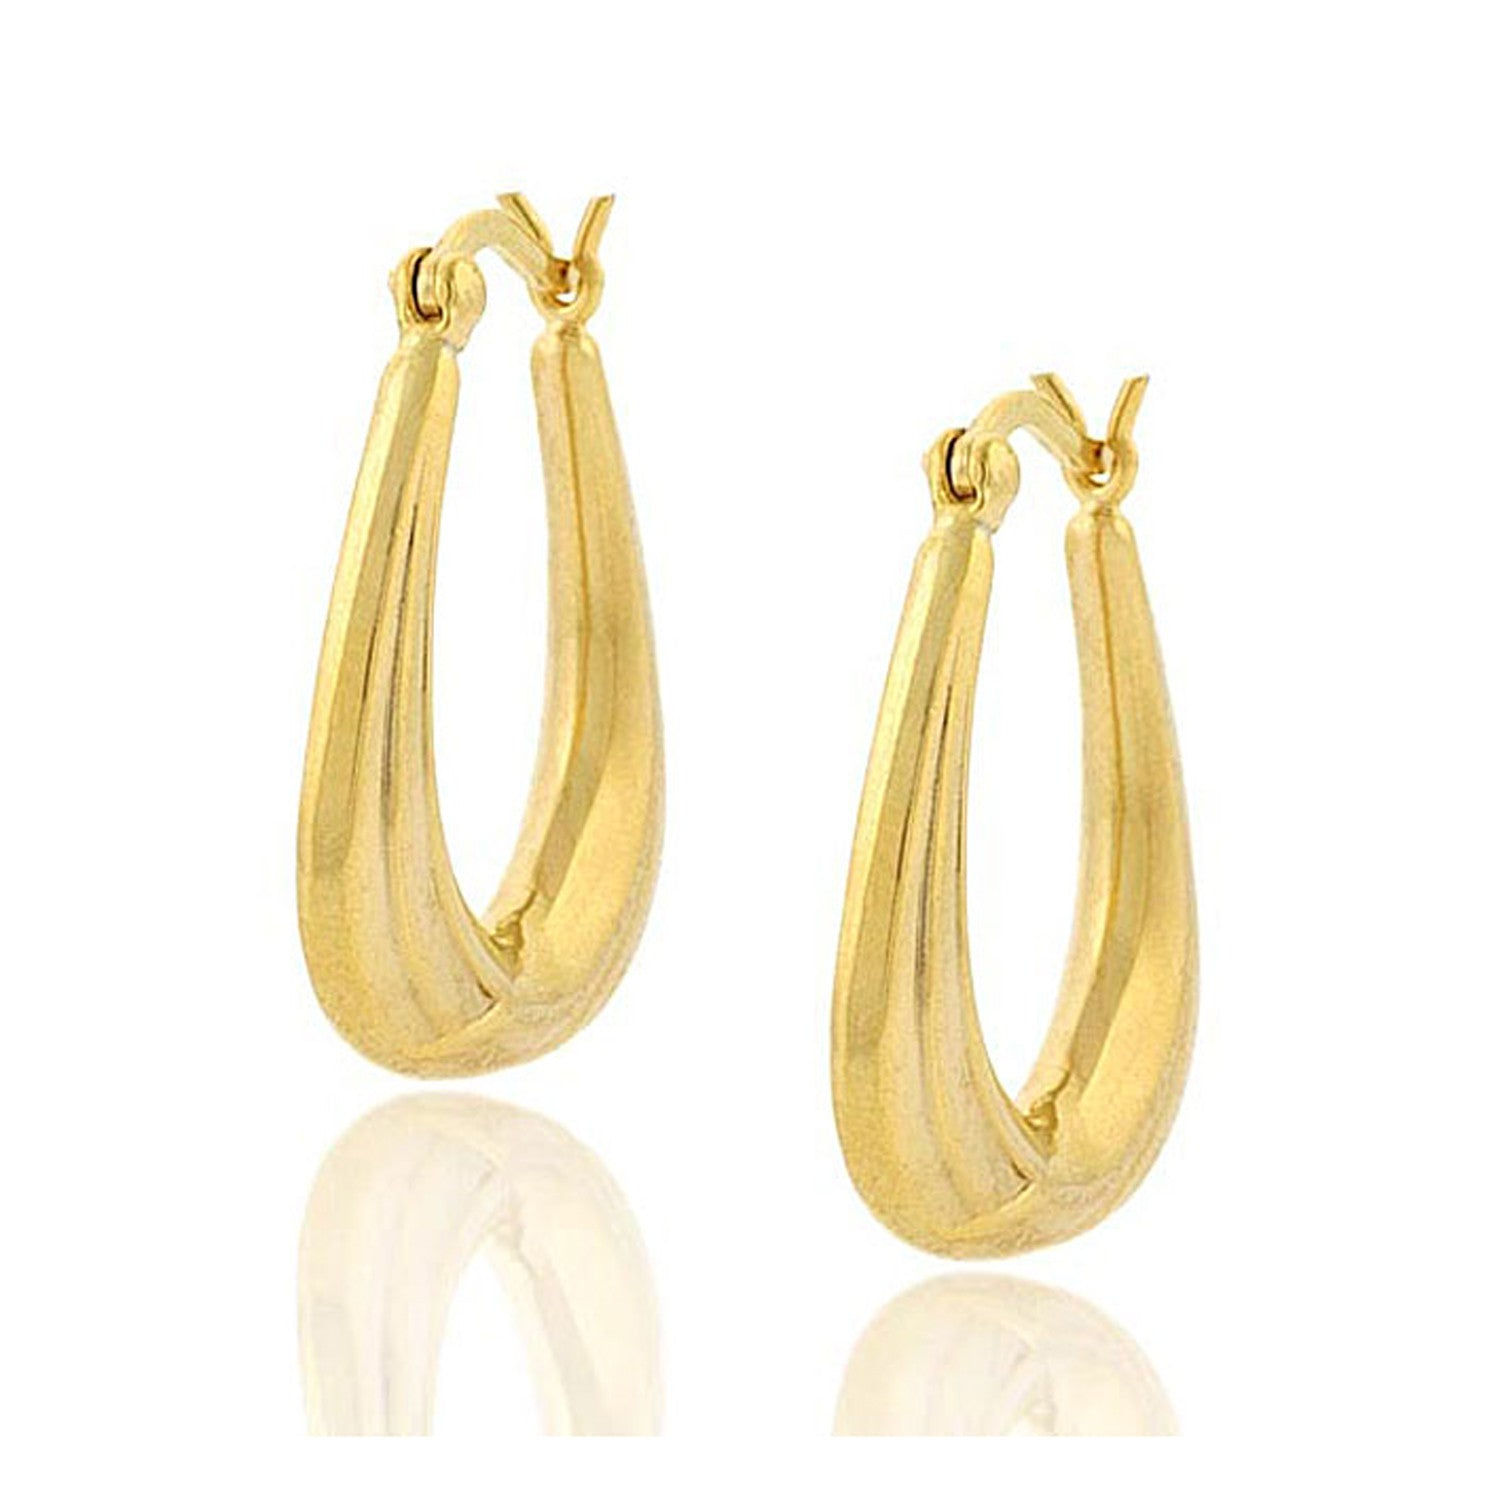 18k Gold Over Sterling Silver Triangle Saddleback Hoop Earrings